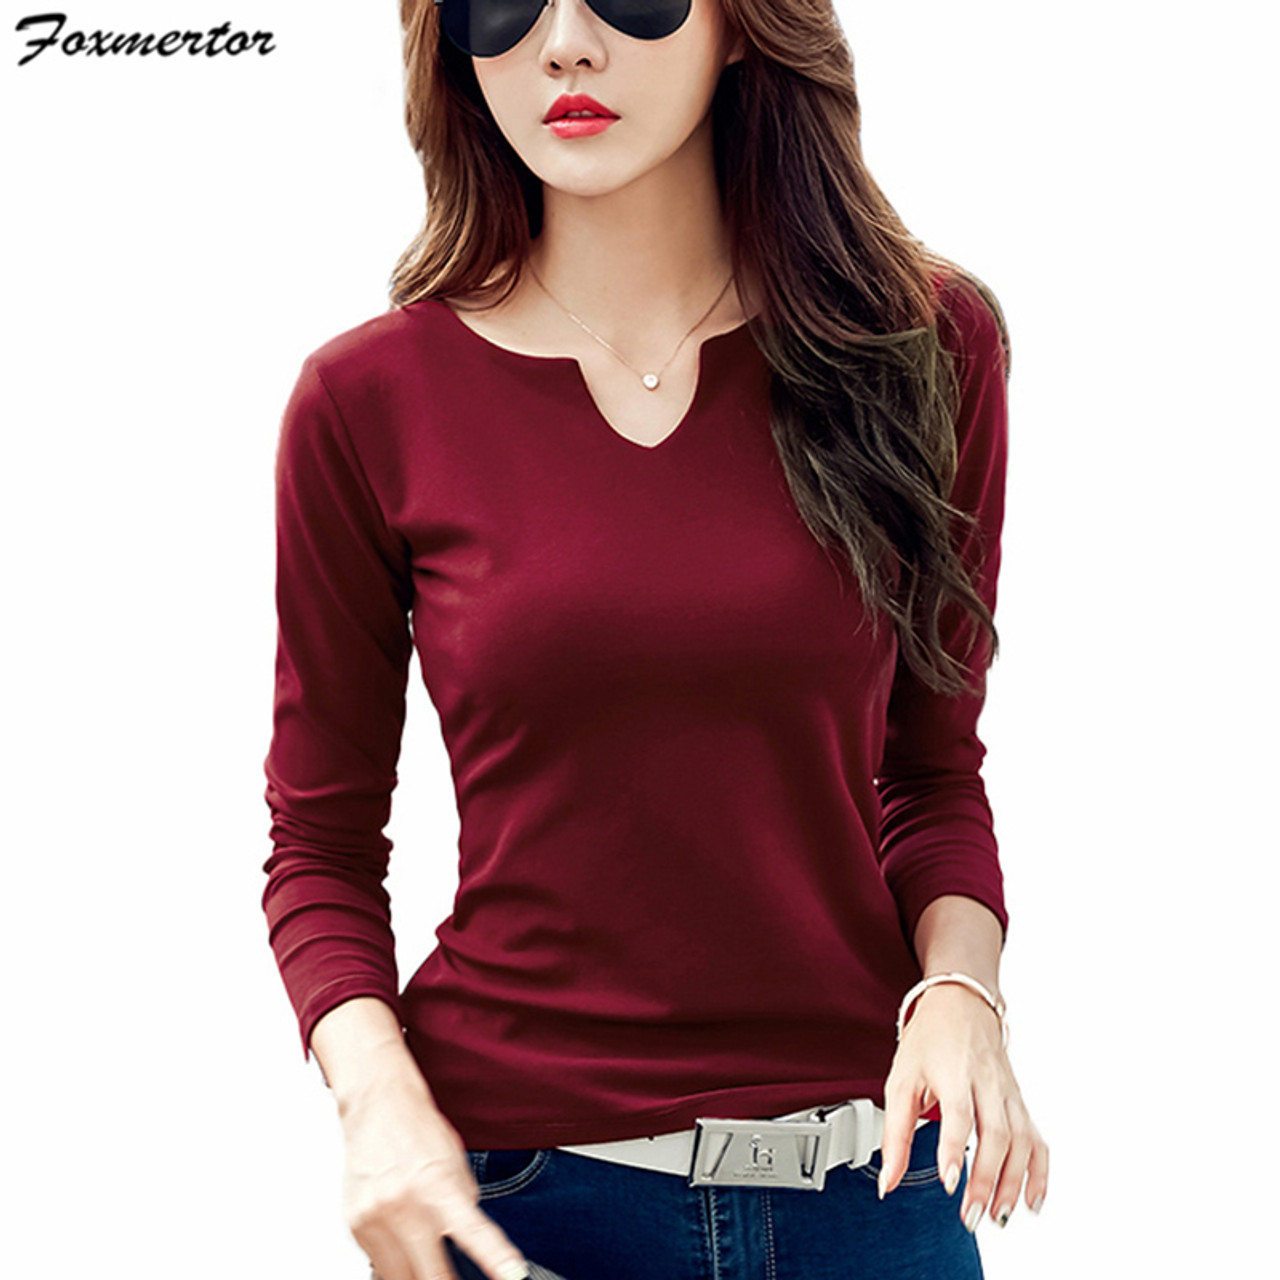 0da8dc4d1abc Foxmertor T-shirt Women 2018 Autumn Cotton Female T Shirts V-Neck Solid  Striped ...